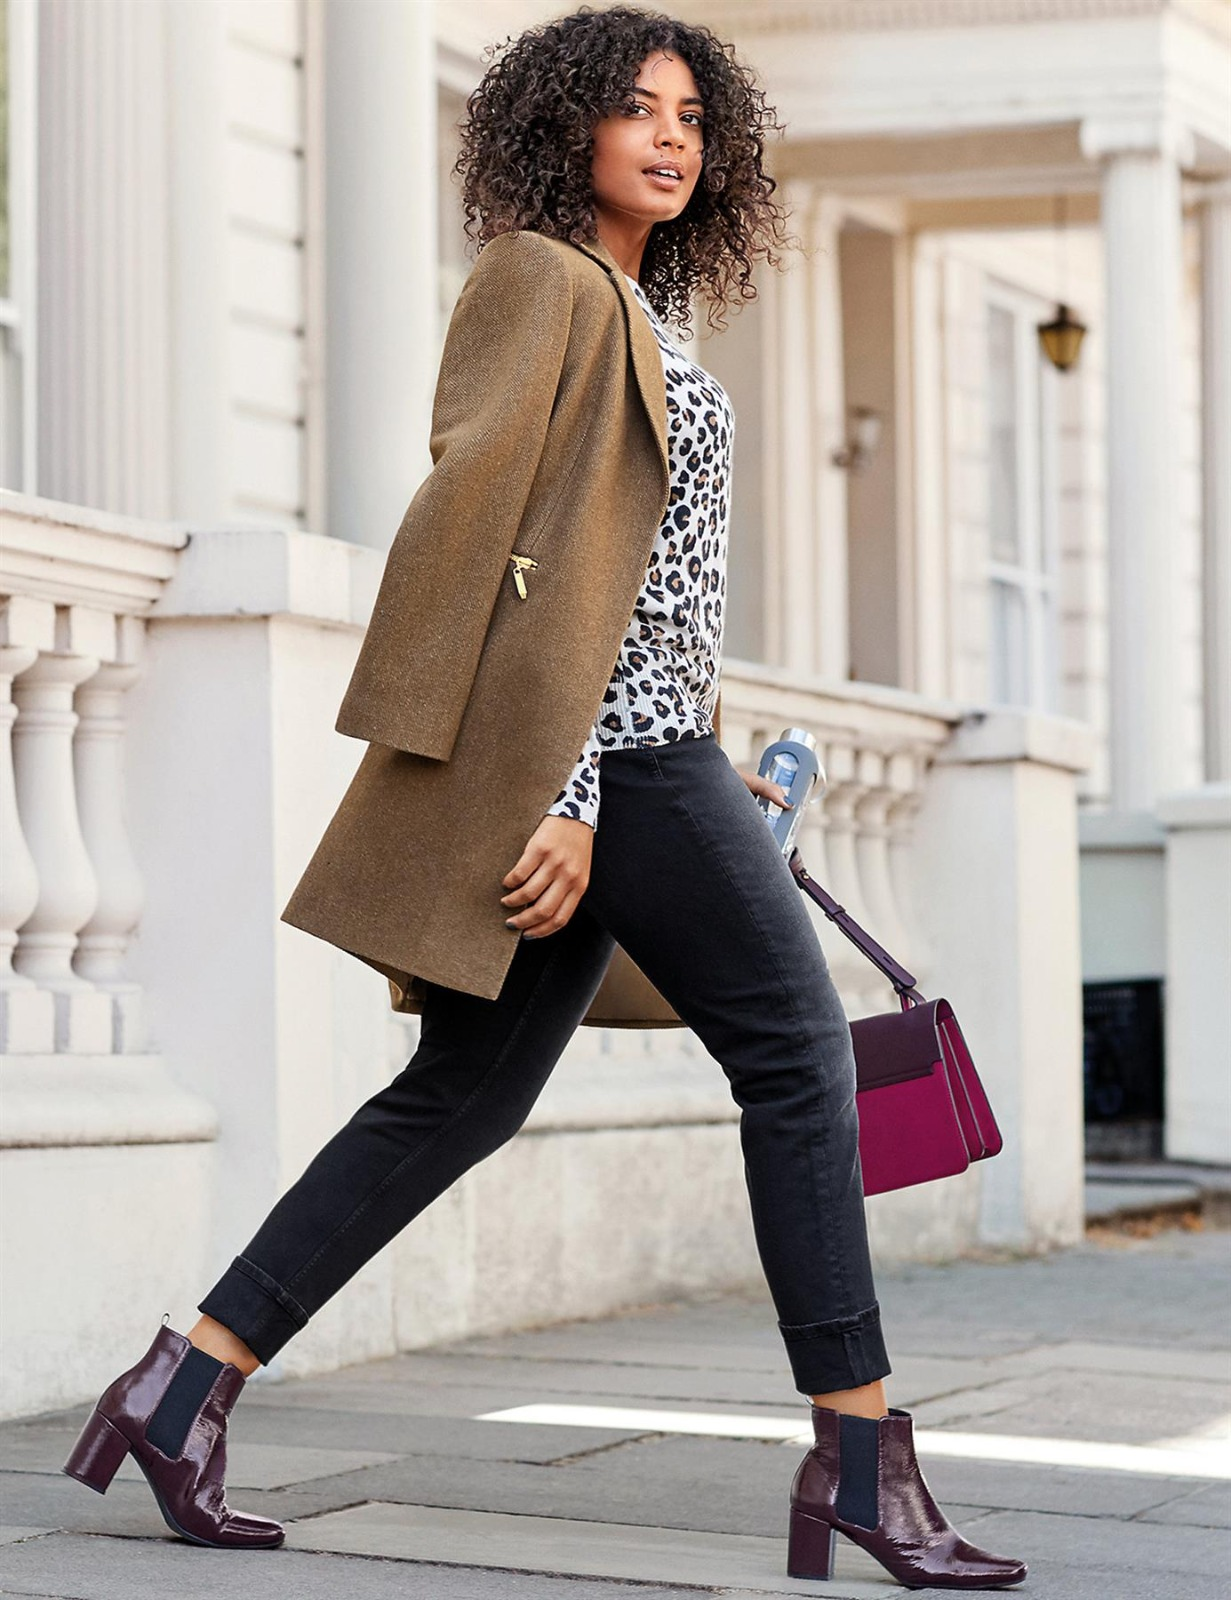 M-amp-S-Wool-Blend-Single-Breasted-Pink-Brown-Winter-Coat-Holly-Willoughby-Size-6-24 thumbnail 21